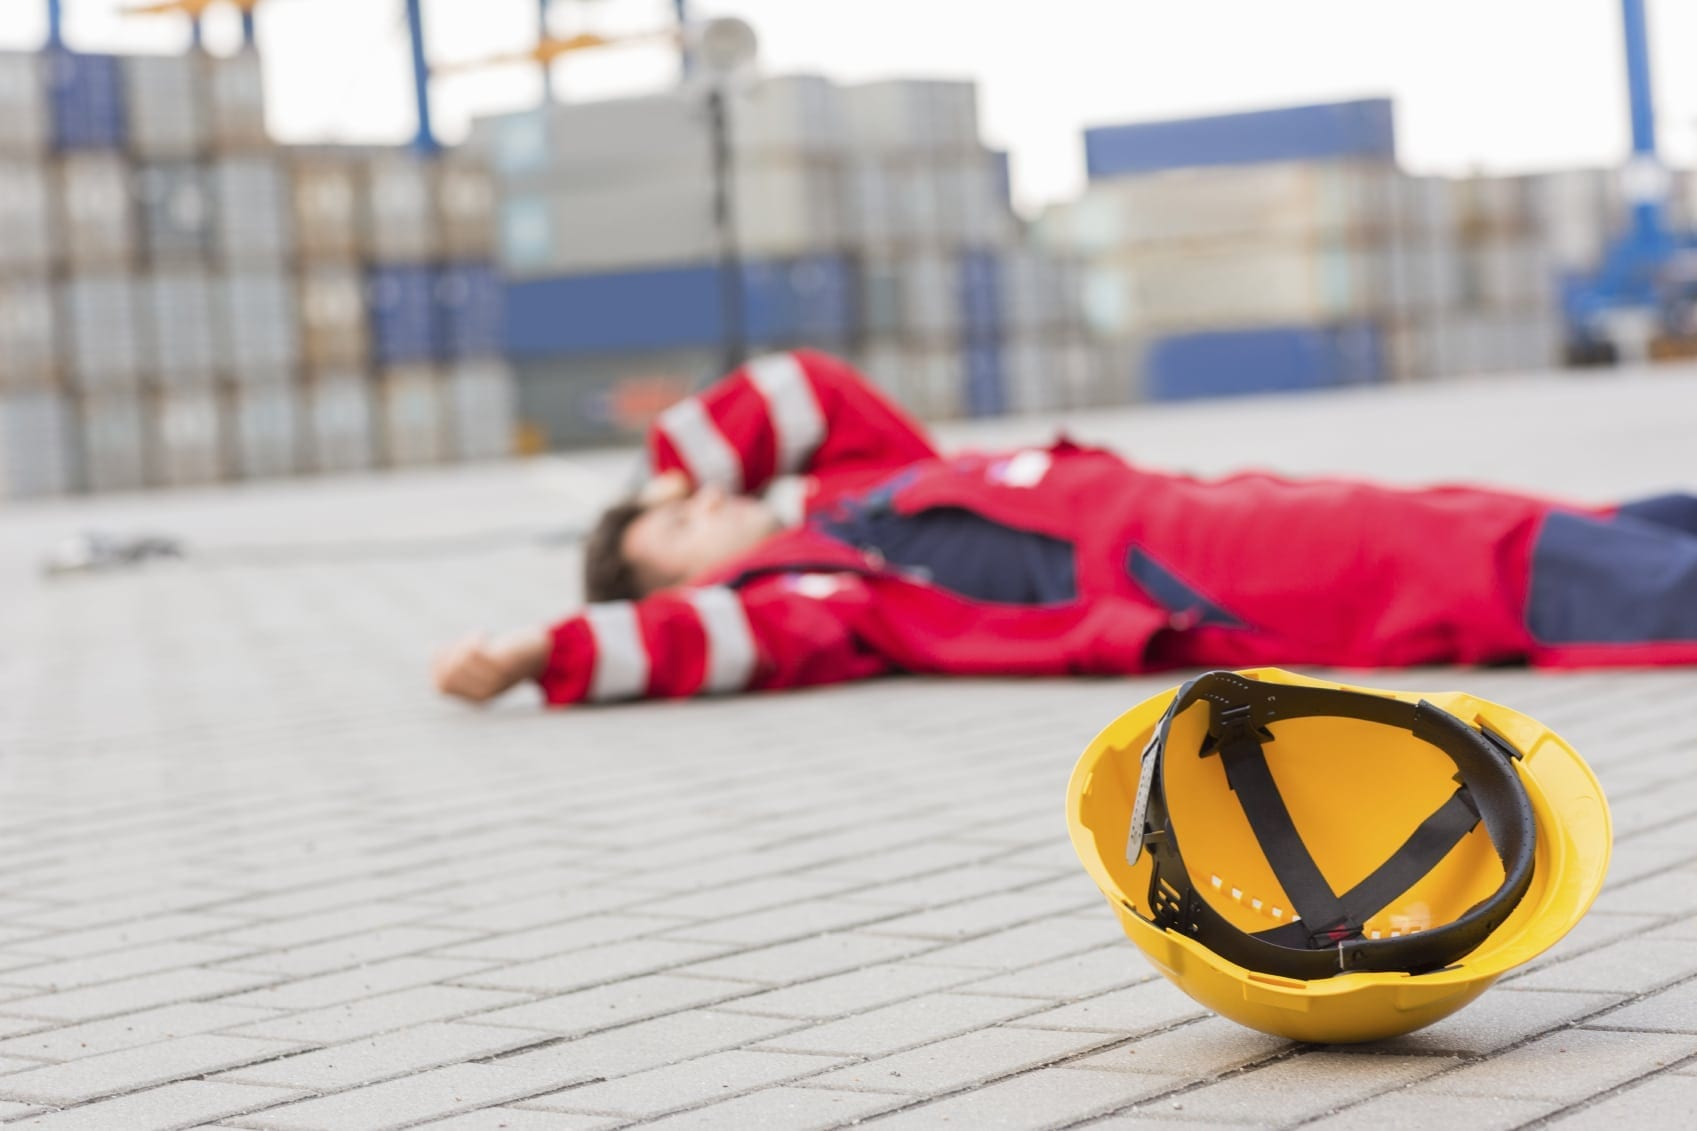 Injured Construction Worker Stock Photo - What to Know if You Are Hurt On The Job